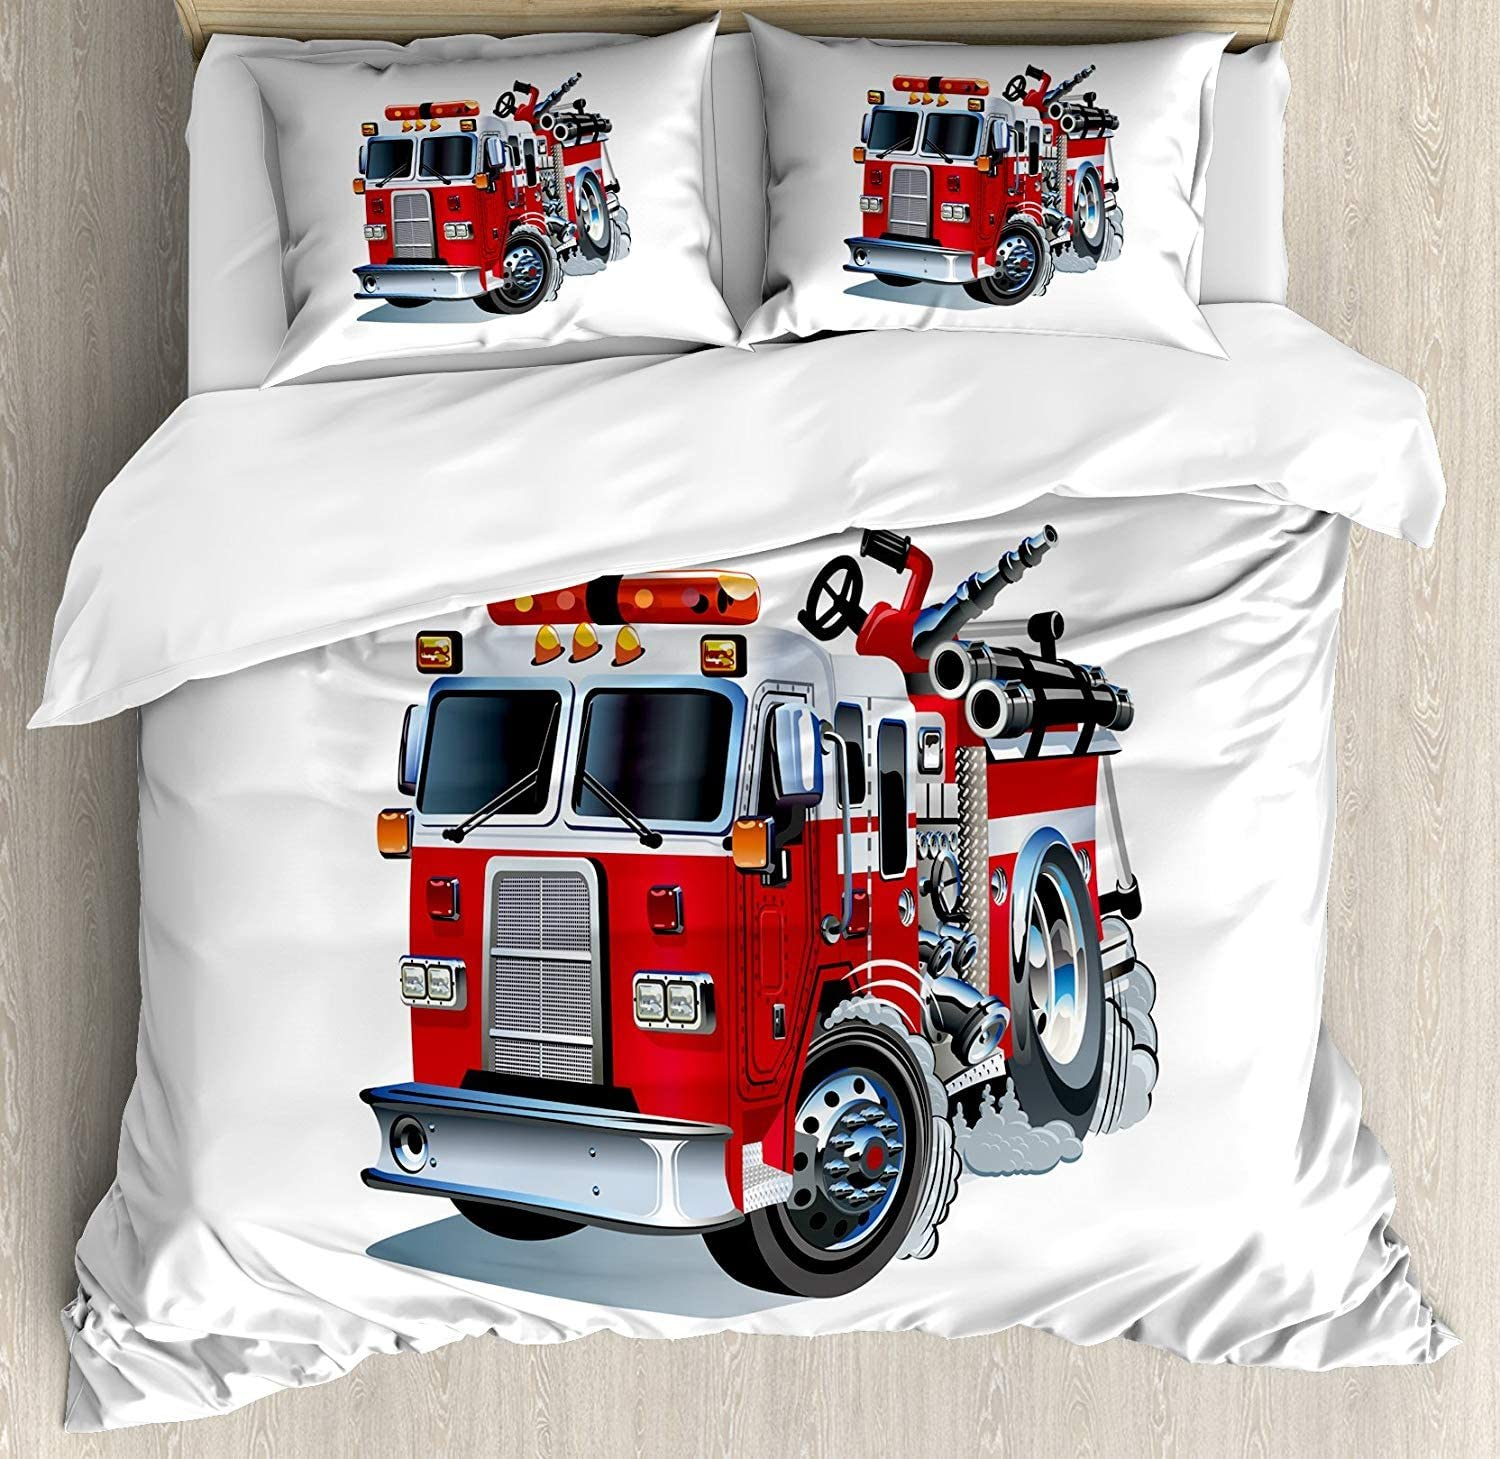 Truck 4 Piece Bedding Set,Fire Brigade Vehicle Emergency Aid for Public Firefighter Transportation Themed Lorry,Duvet Cover Set Comforter Cover for Childrens/Kids/Teens/Adults,Grey Red Full Size